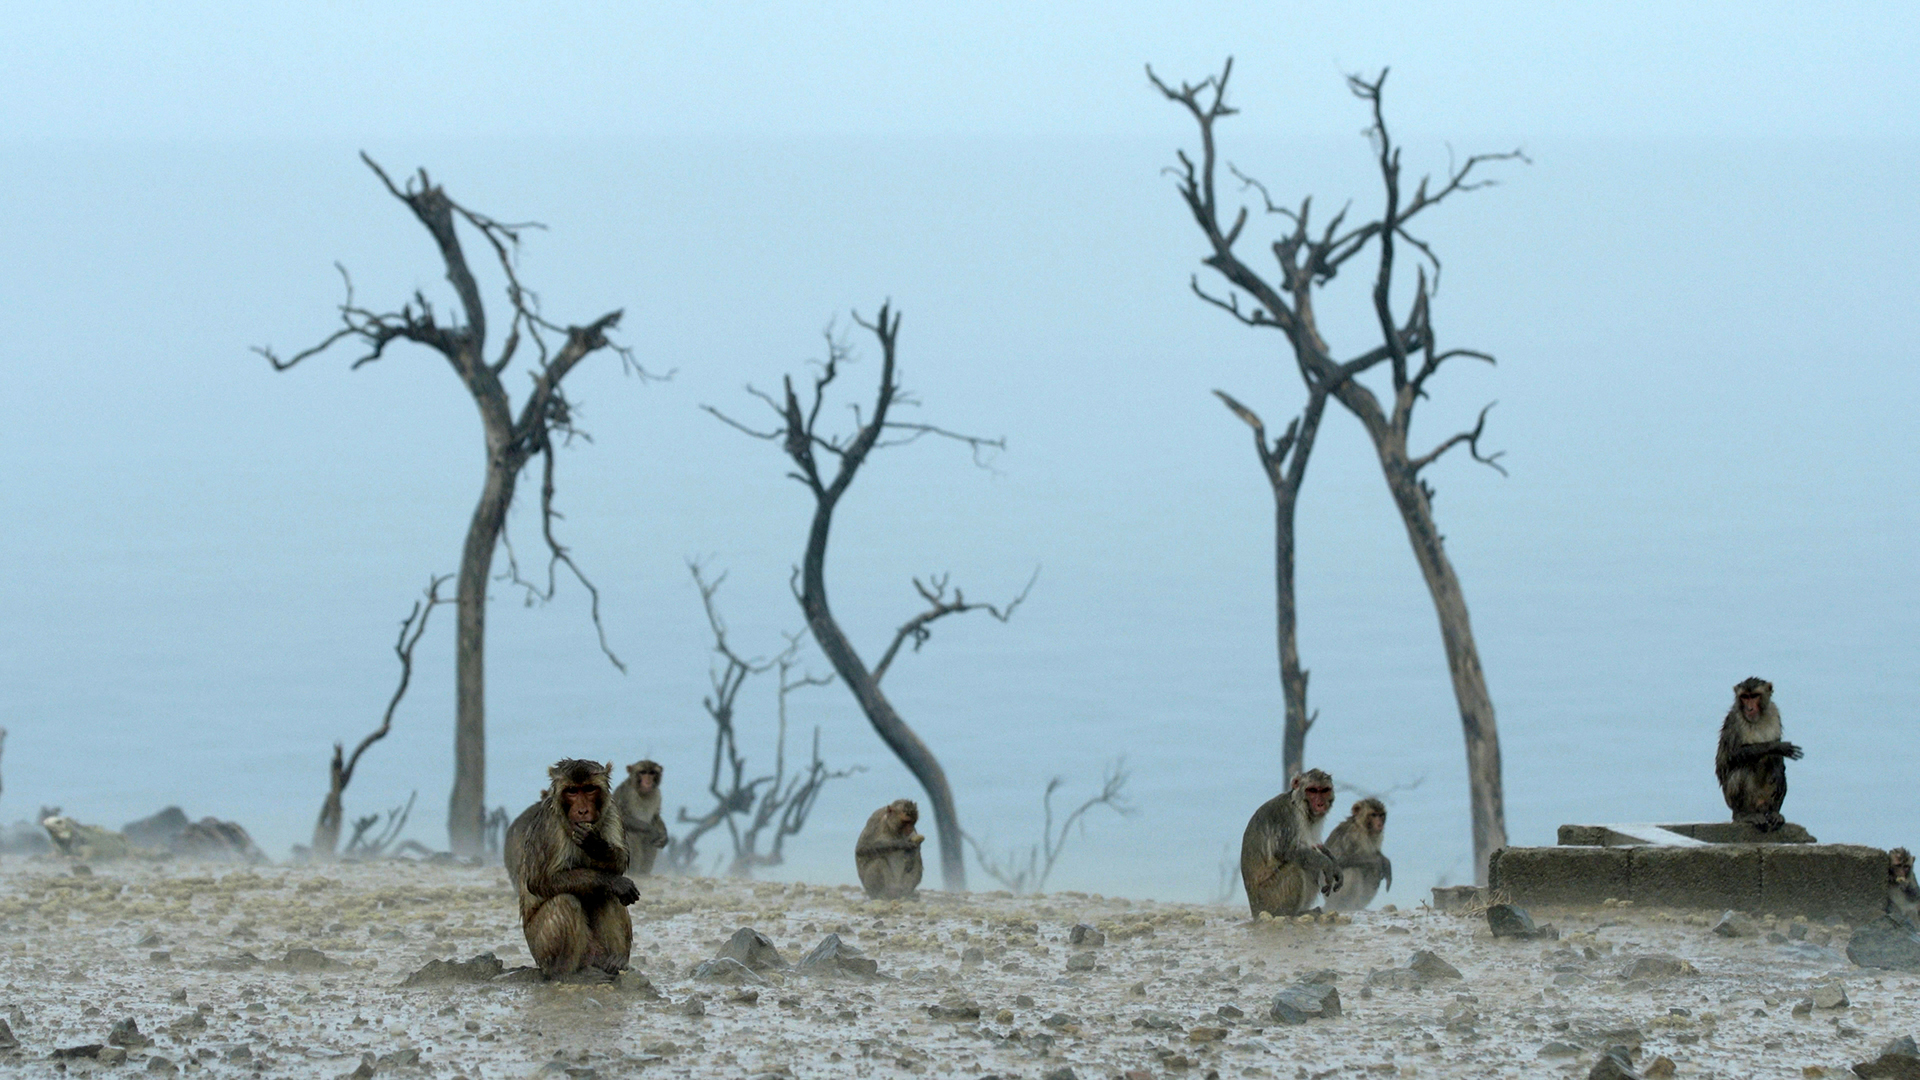 foggy barren landscape, one macaque in foreground, two macaques in middle, and three macaques in the background in front of six tree trunks